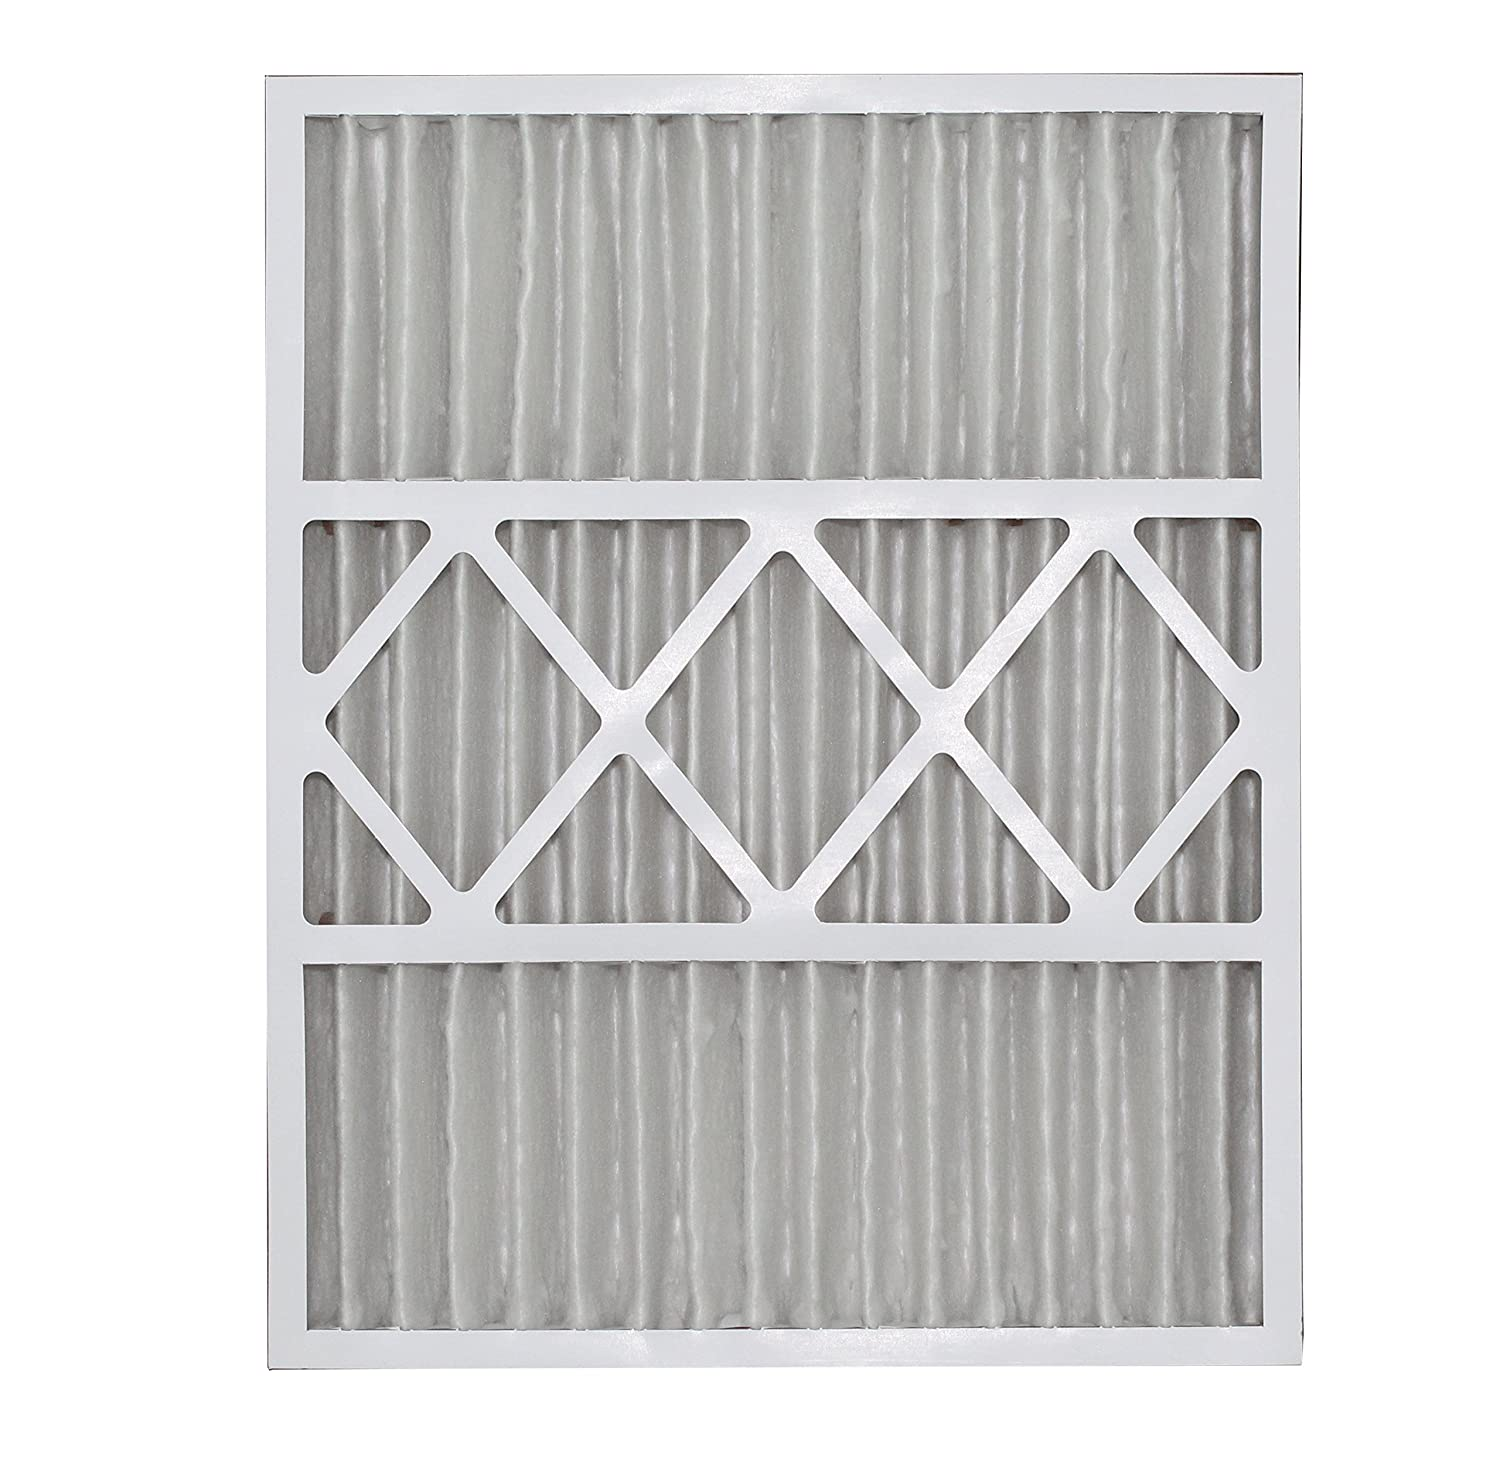 2-Pack Filtration Group Made in the USA Environmental Air Aerostar 20x25x5 MERV 11 Honeywell Replacement Pleated Air Filter